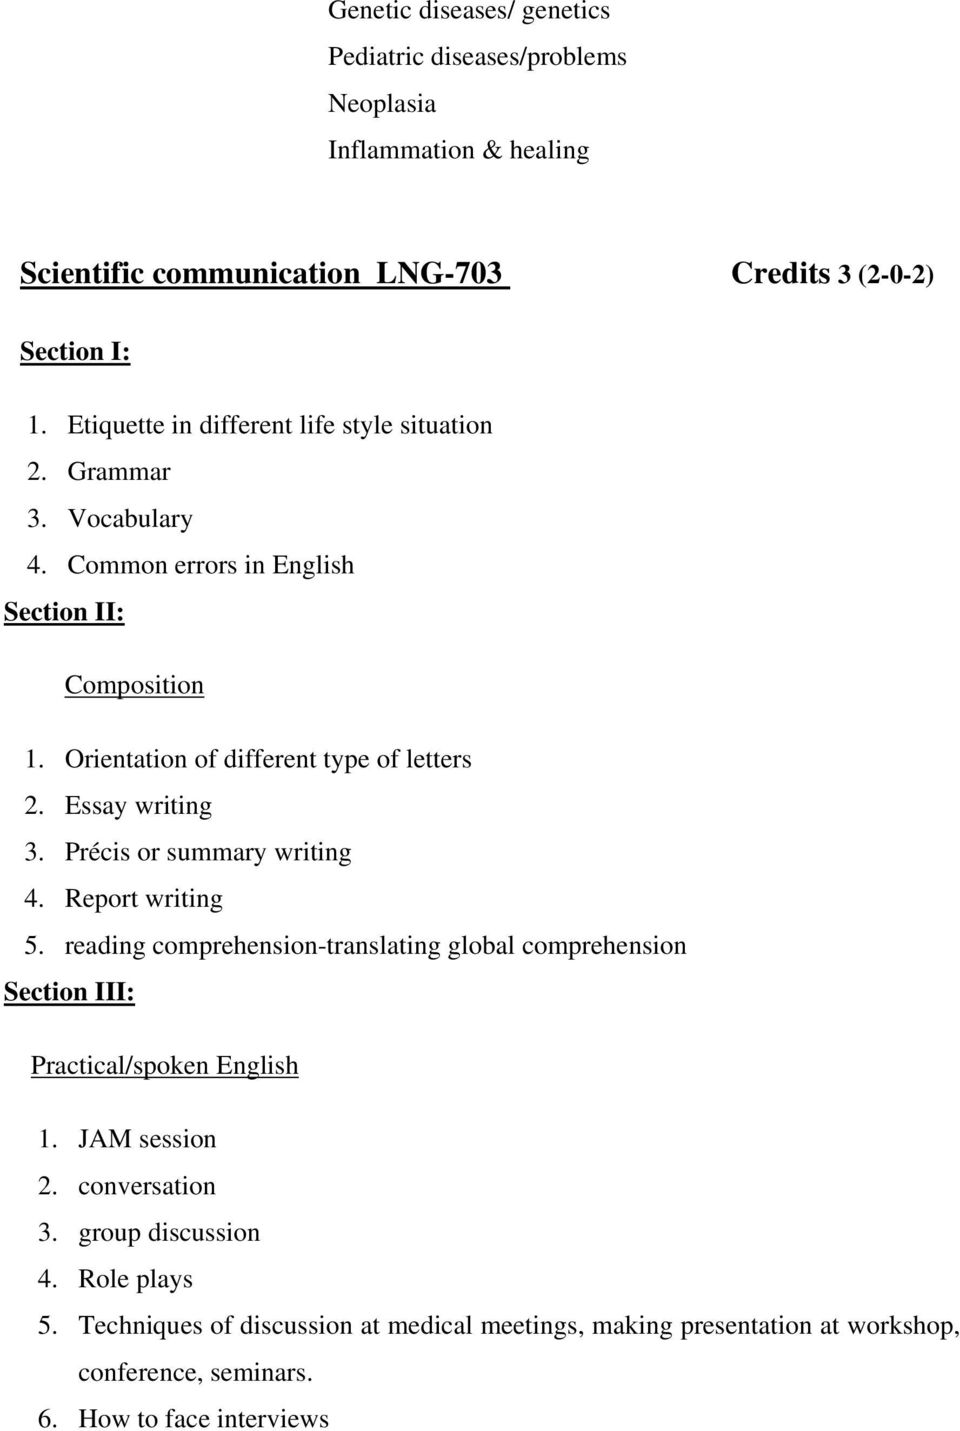 Essay writing 3. Précis or summary writing 4. Report writing 5. reading comprehension-translating global comprehension Section III: Practical/spoken English 1.